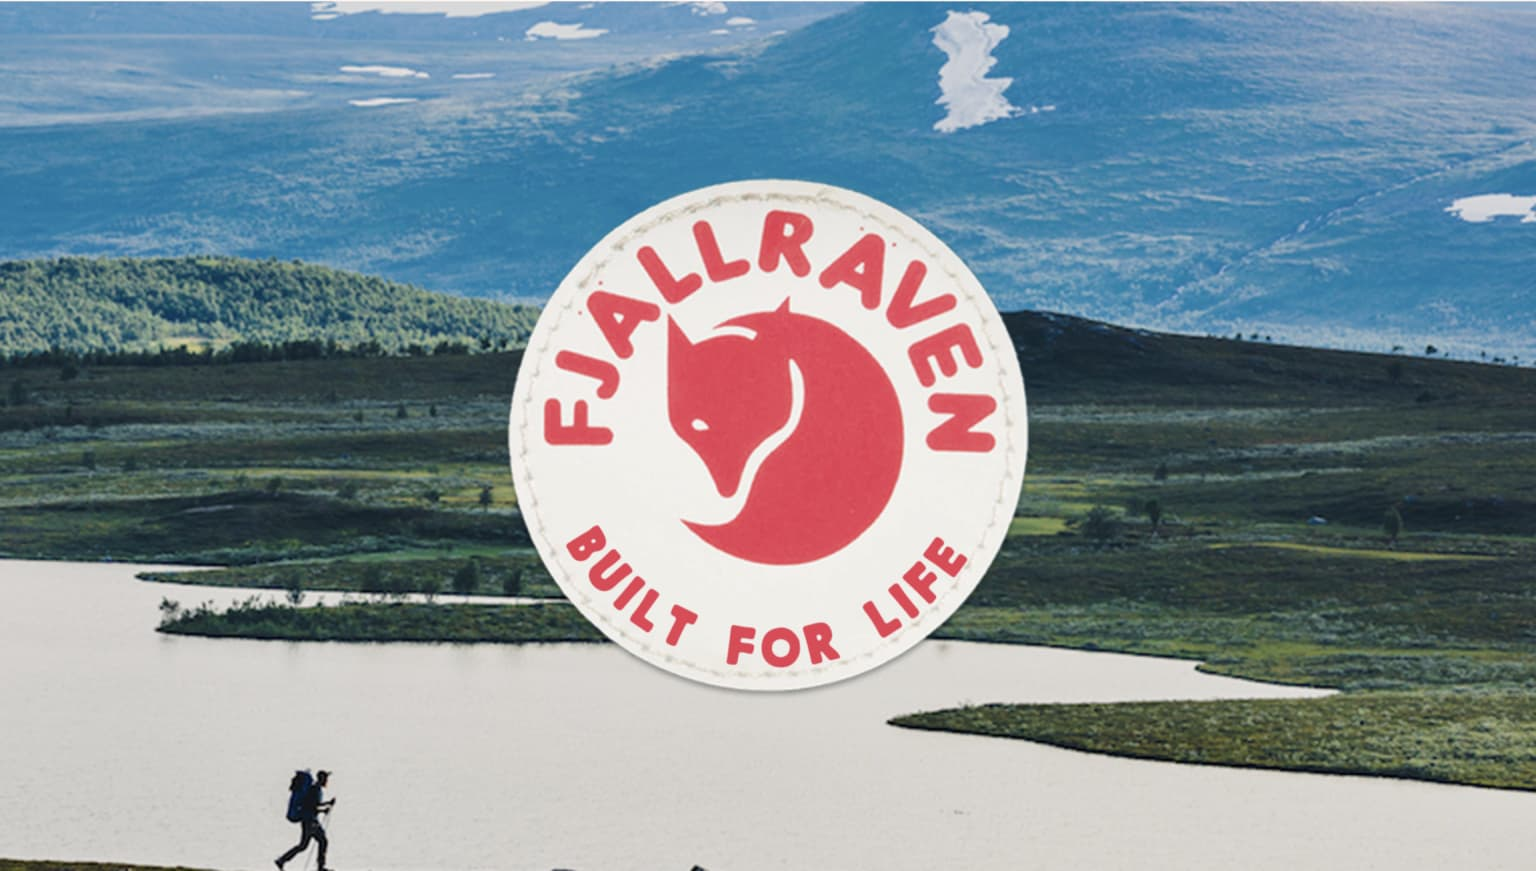 Fjällräven - Built for Life